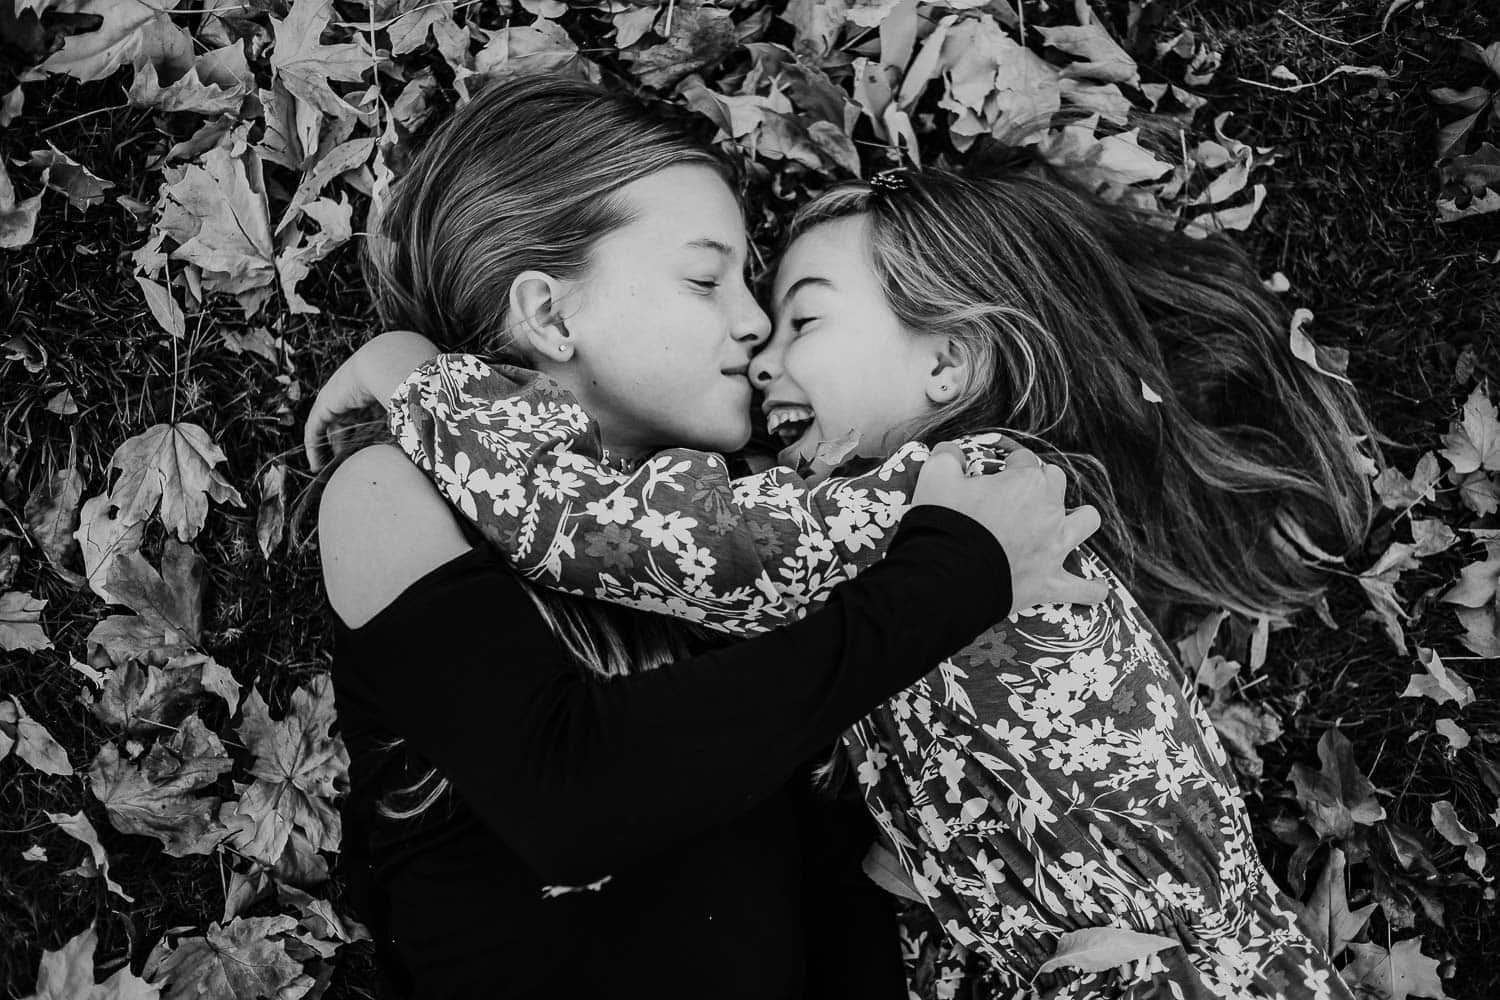 Sisters hugging in the fall leaves - clackamas family photographer